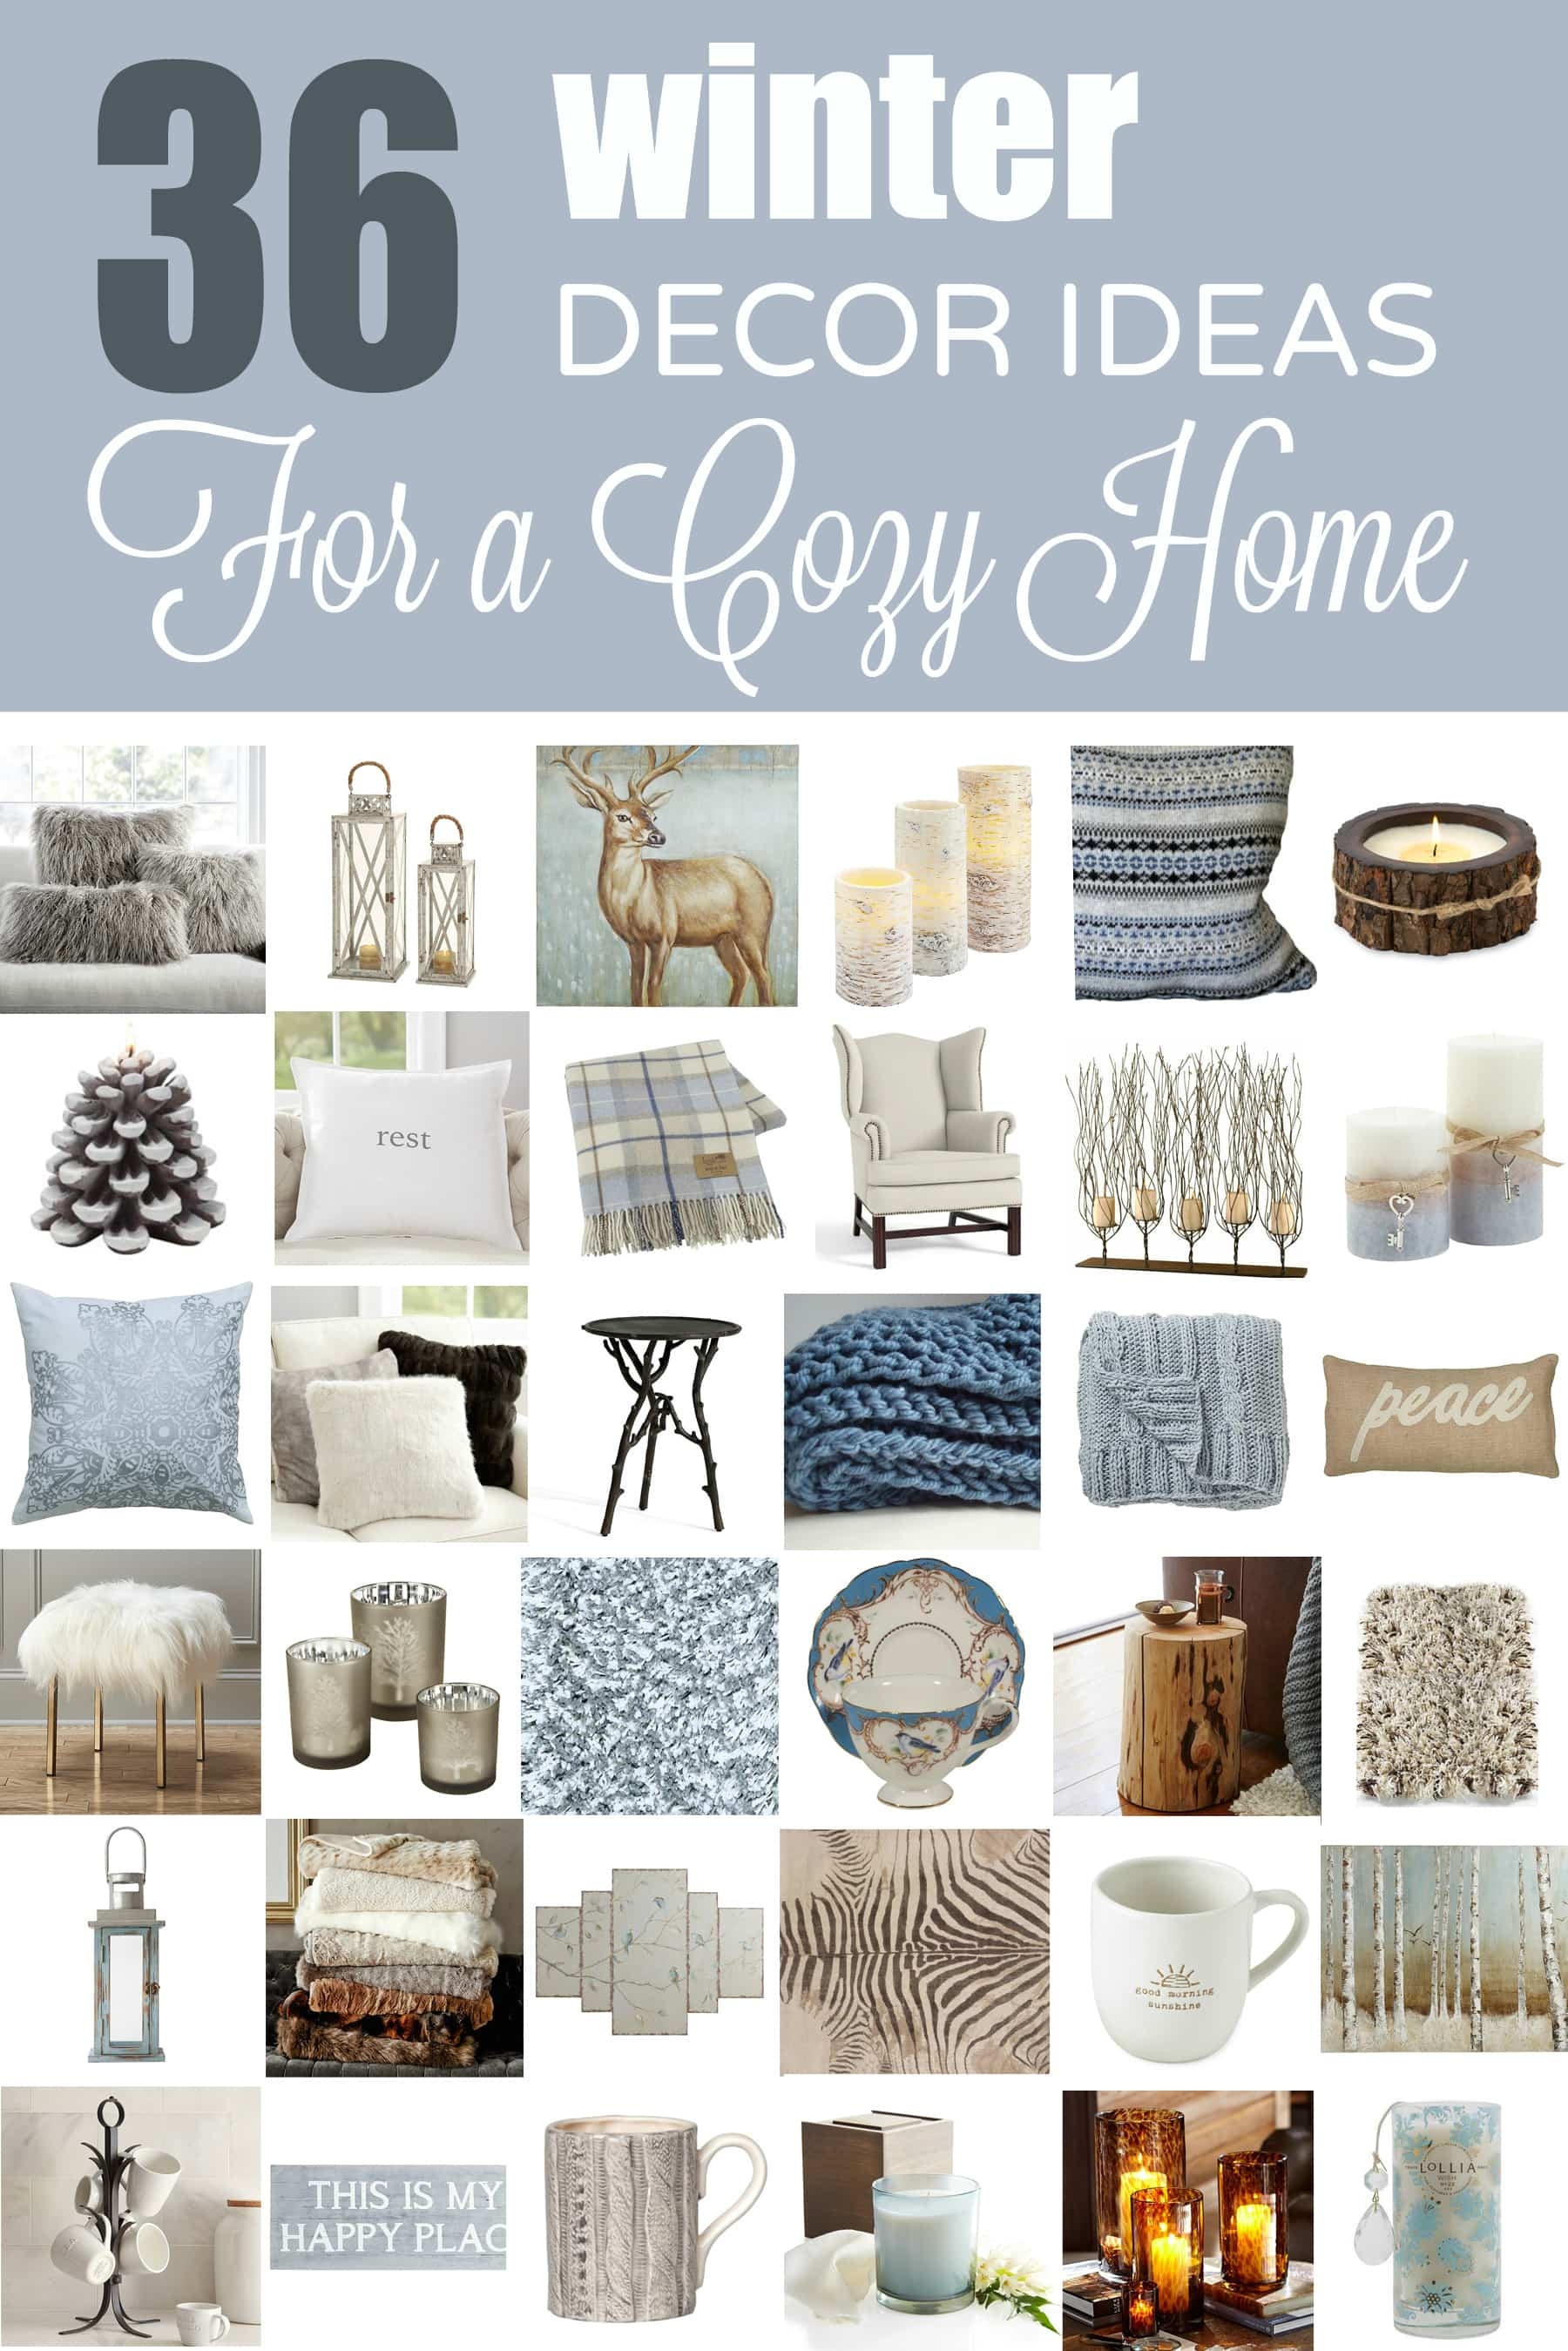 36 Cozy Winter Decor Ideas - Designthusiasm.com